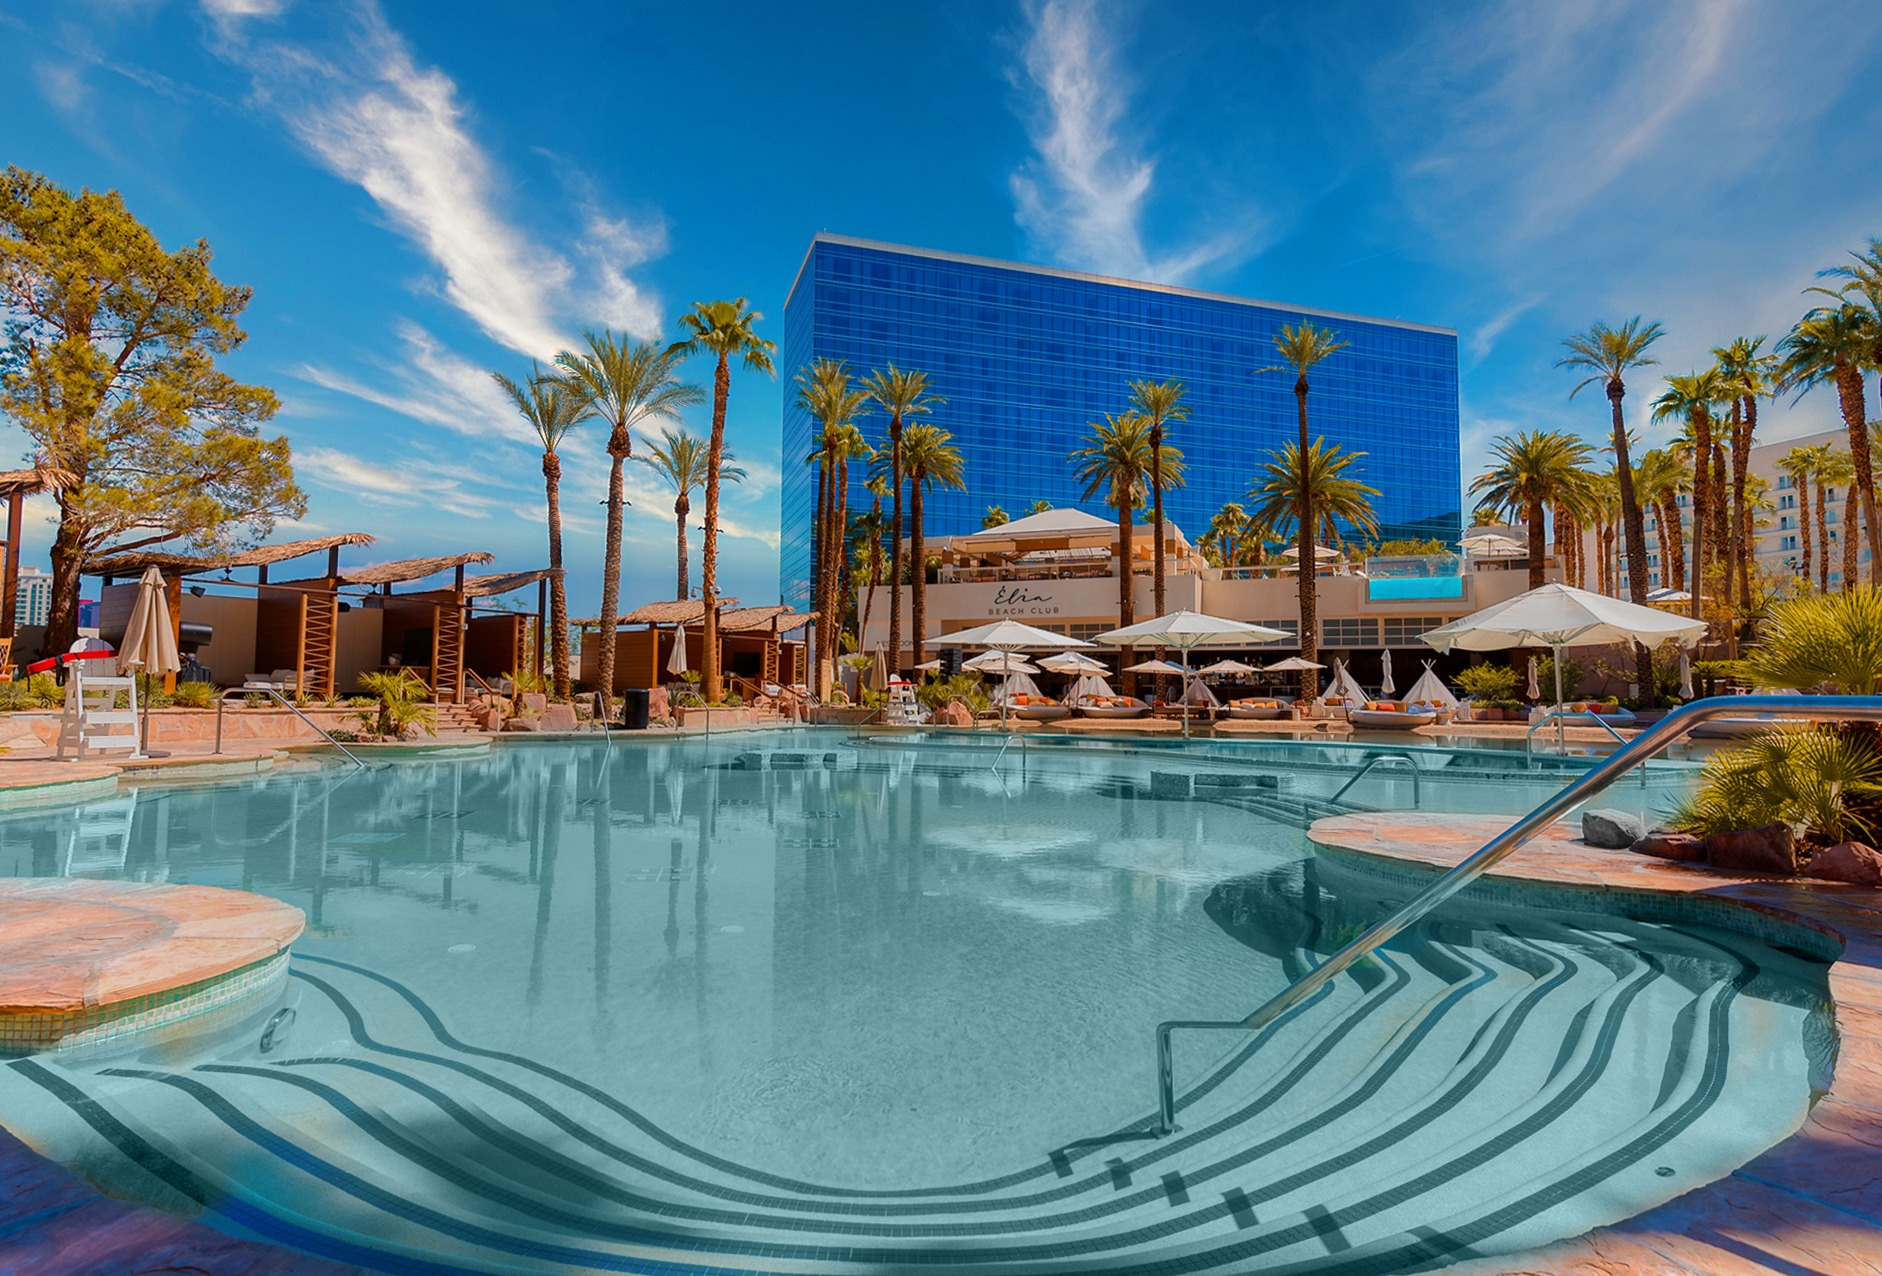 Celebrate EDC Weekend In Style At The Élia Beach Club Las Vegas, With Dreamstate + More